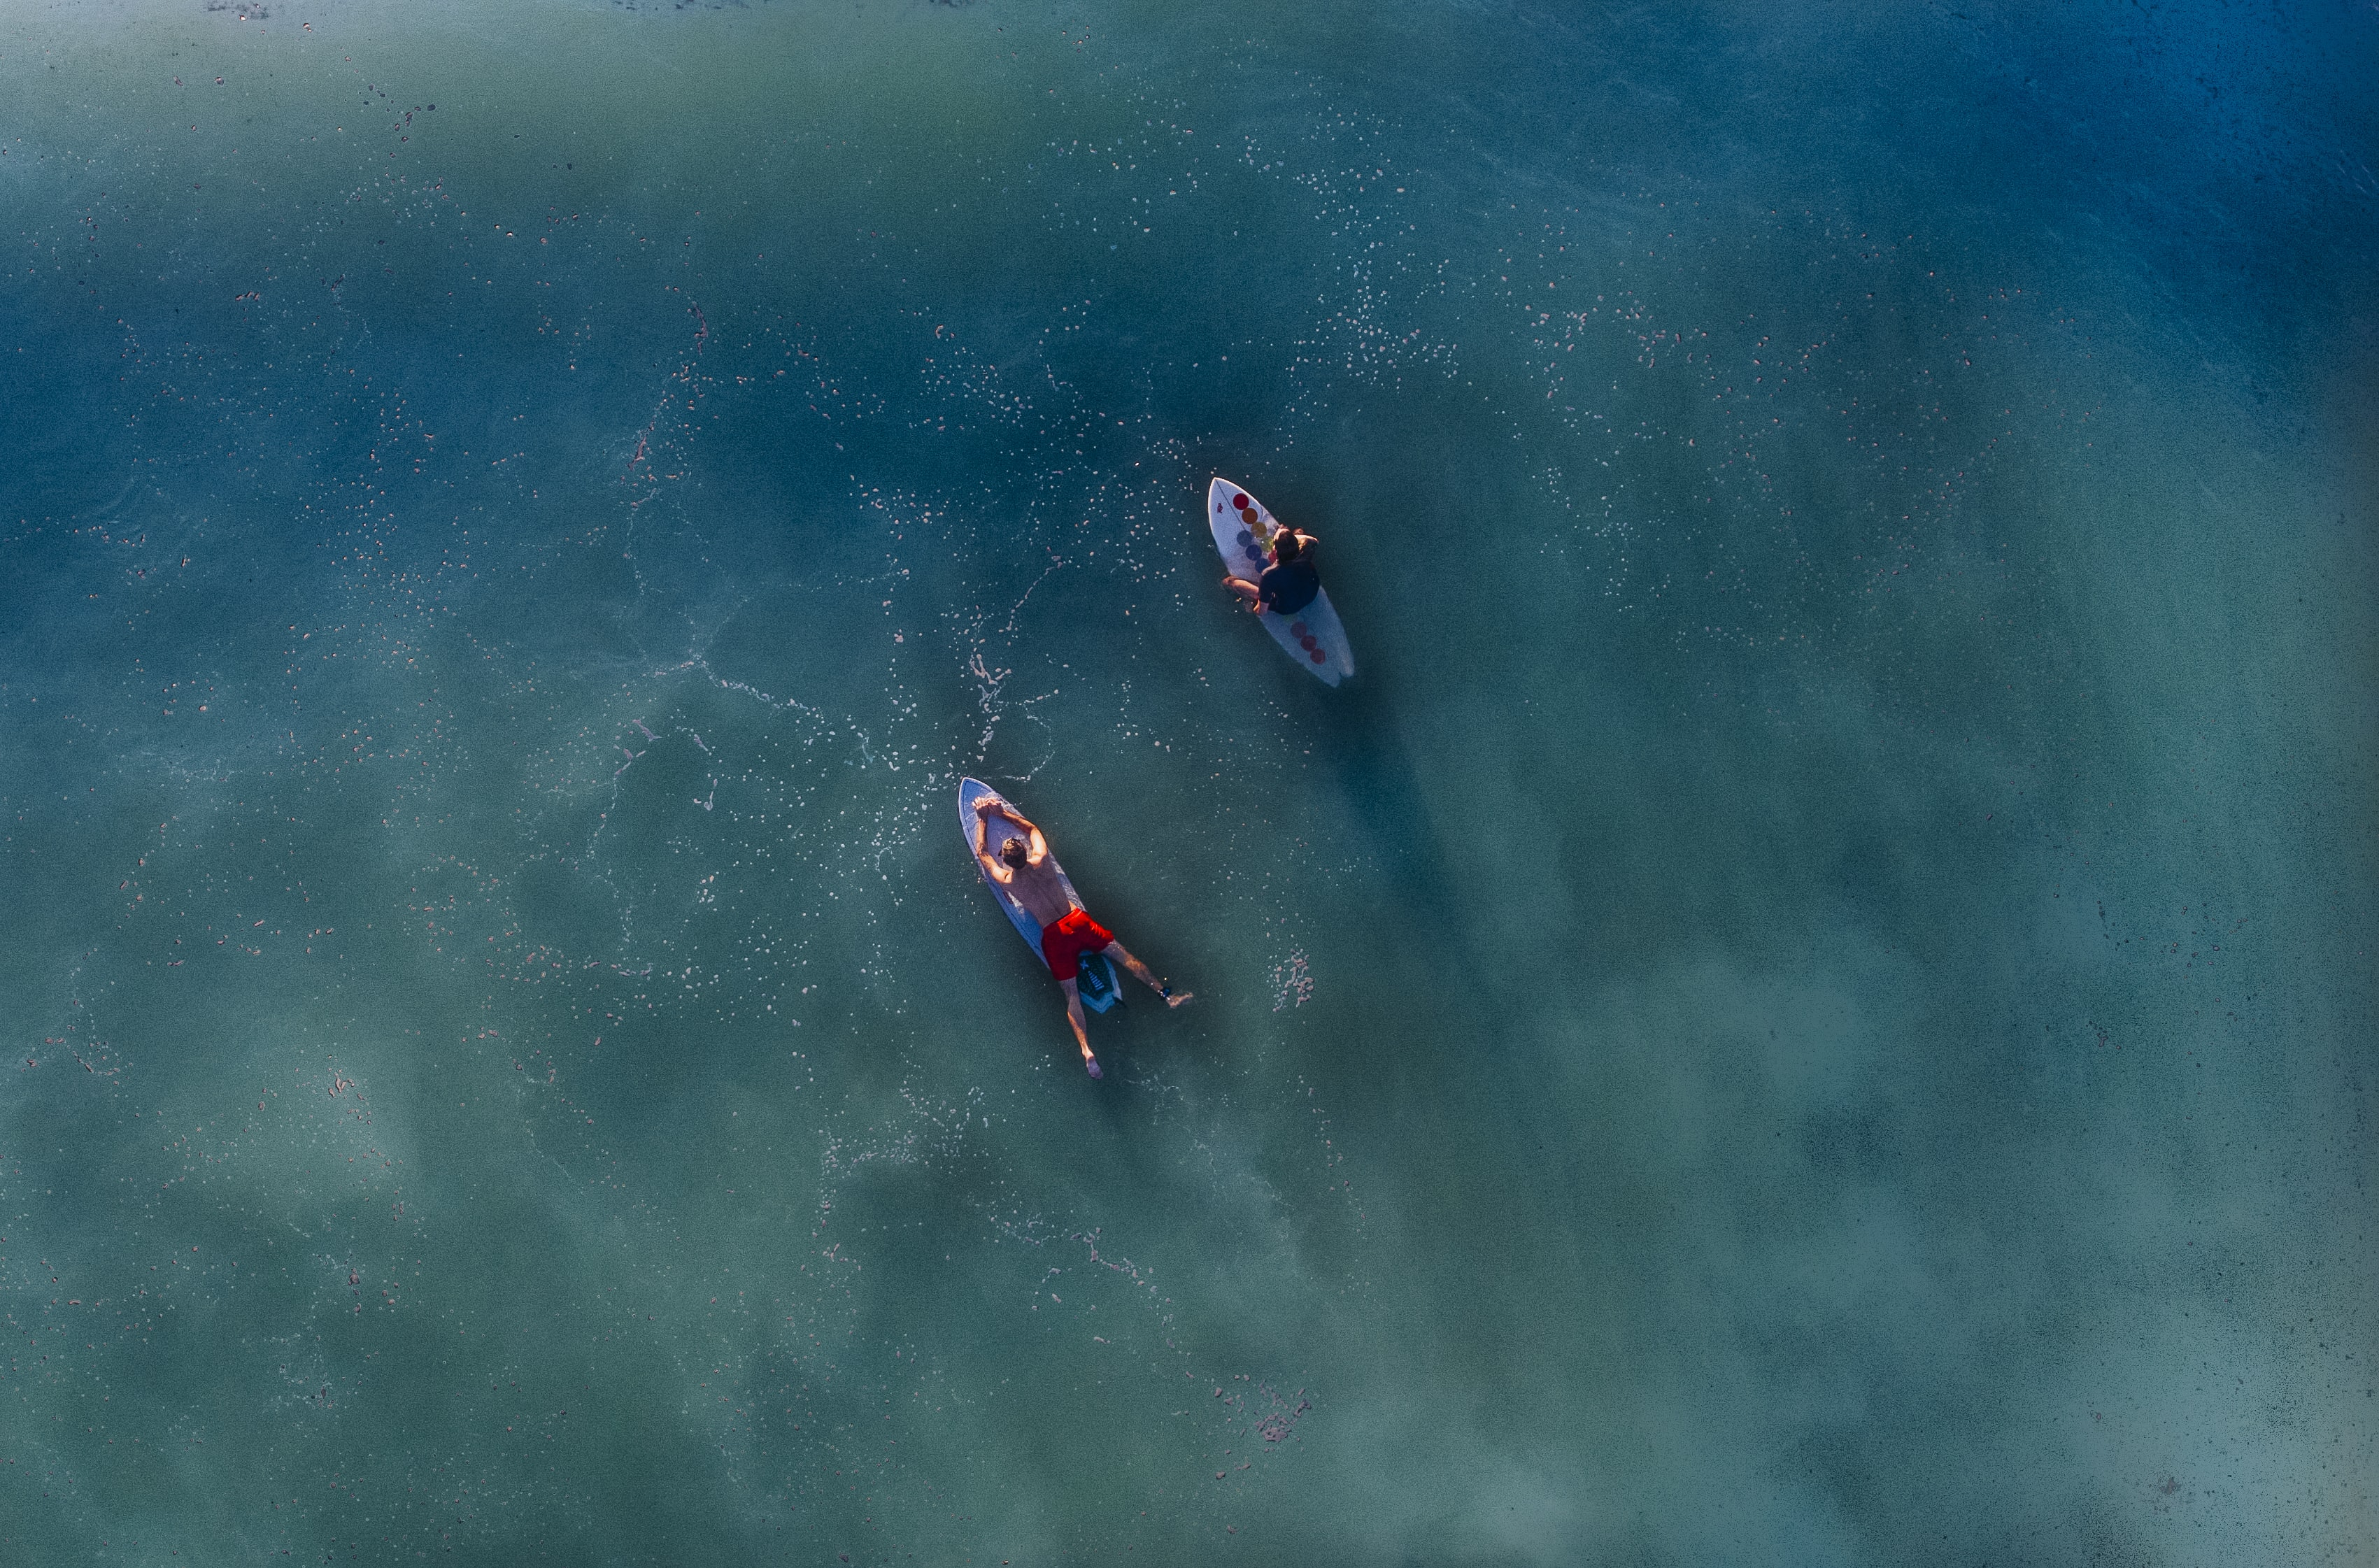 Two surfers on their boards in the calm sea, shot overhead by drone